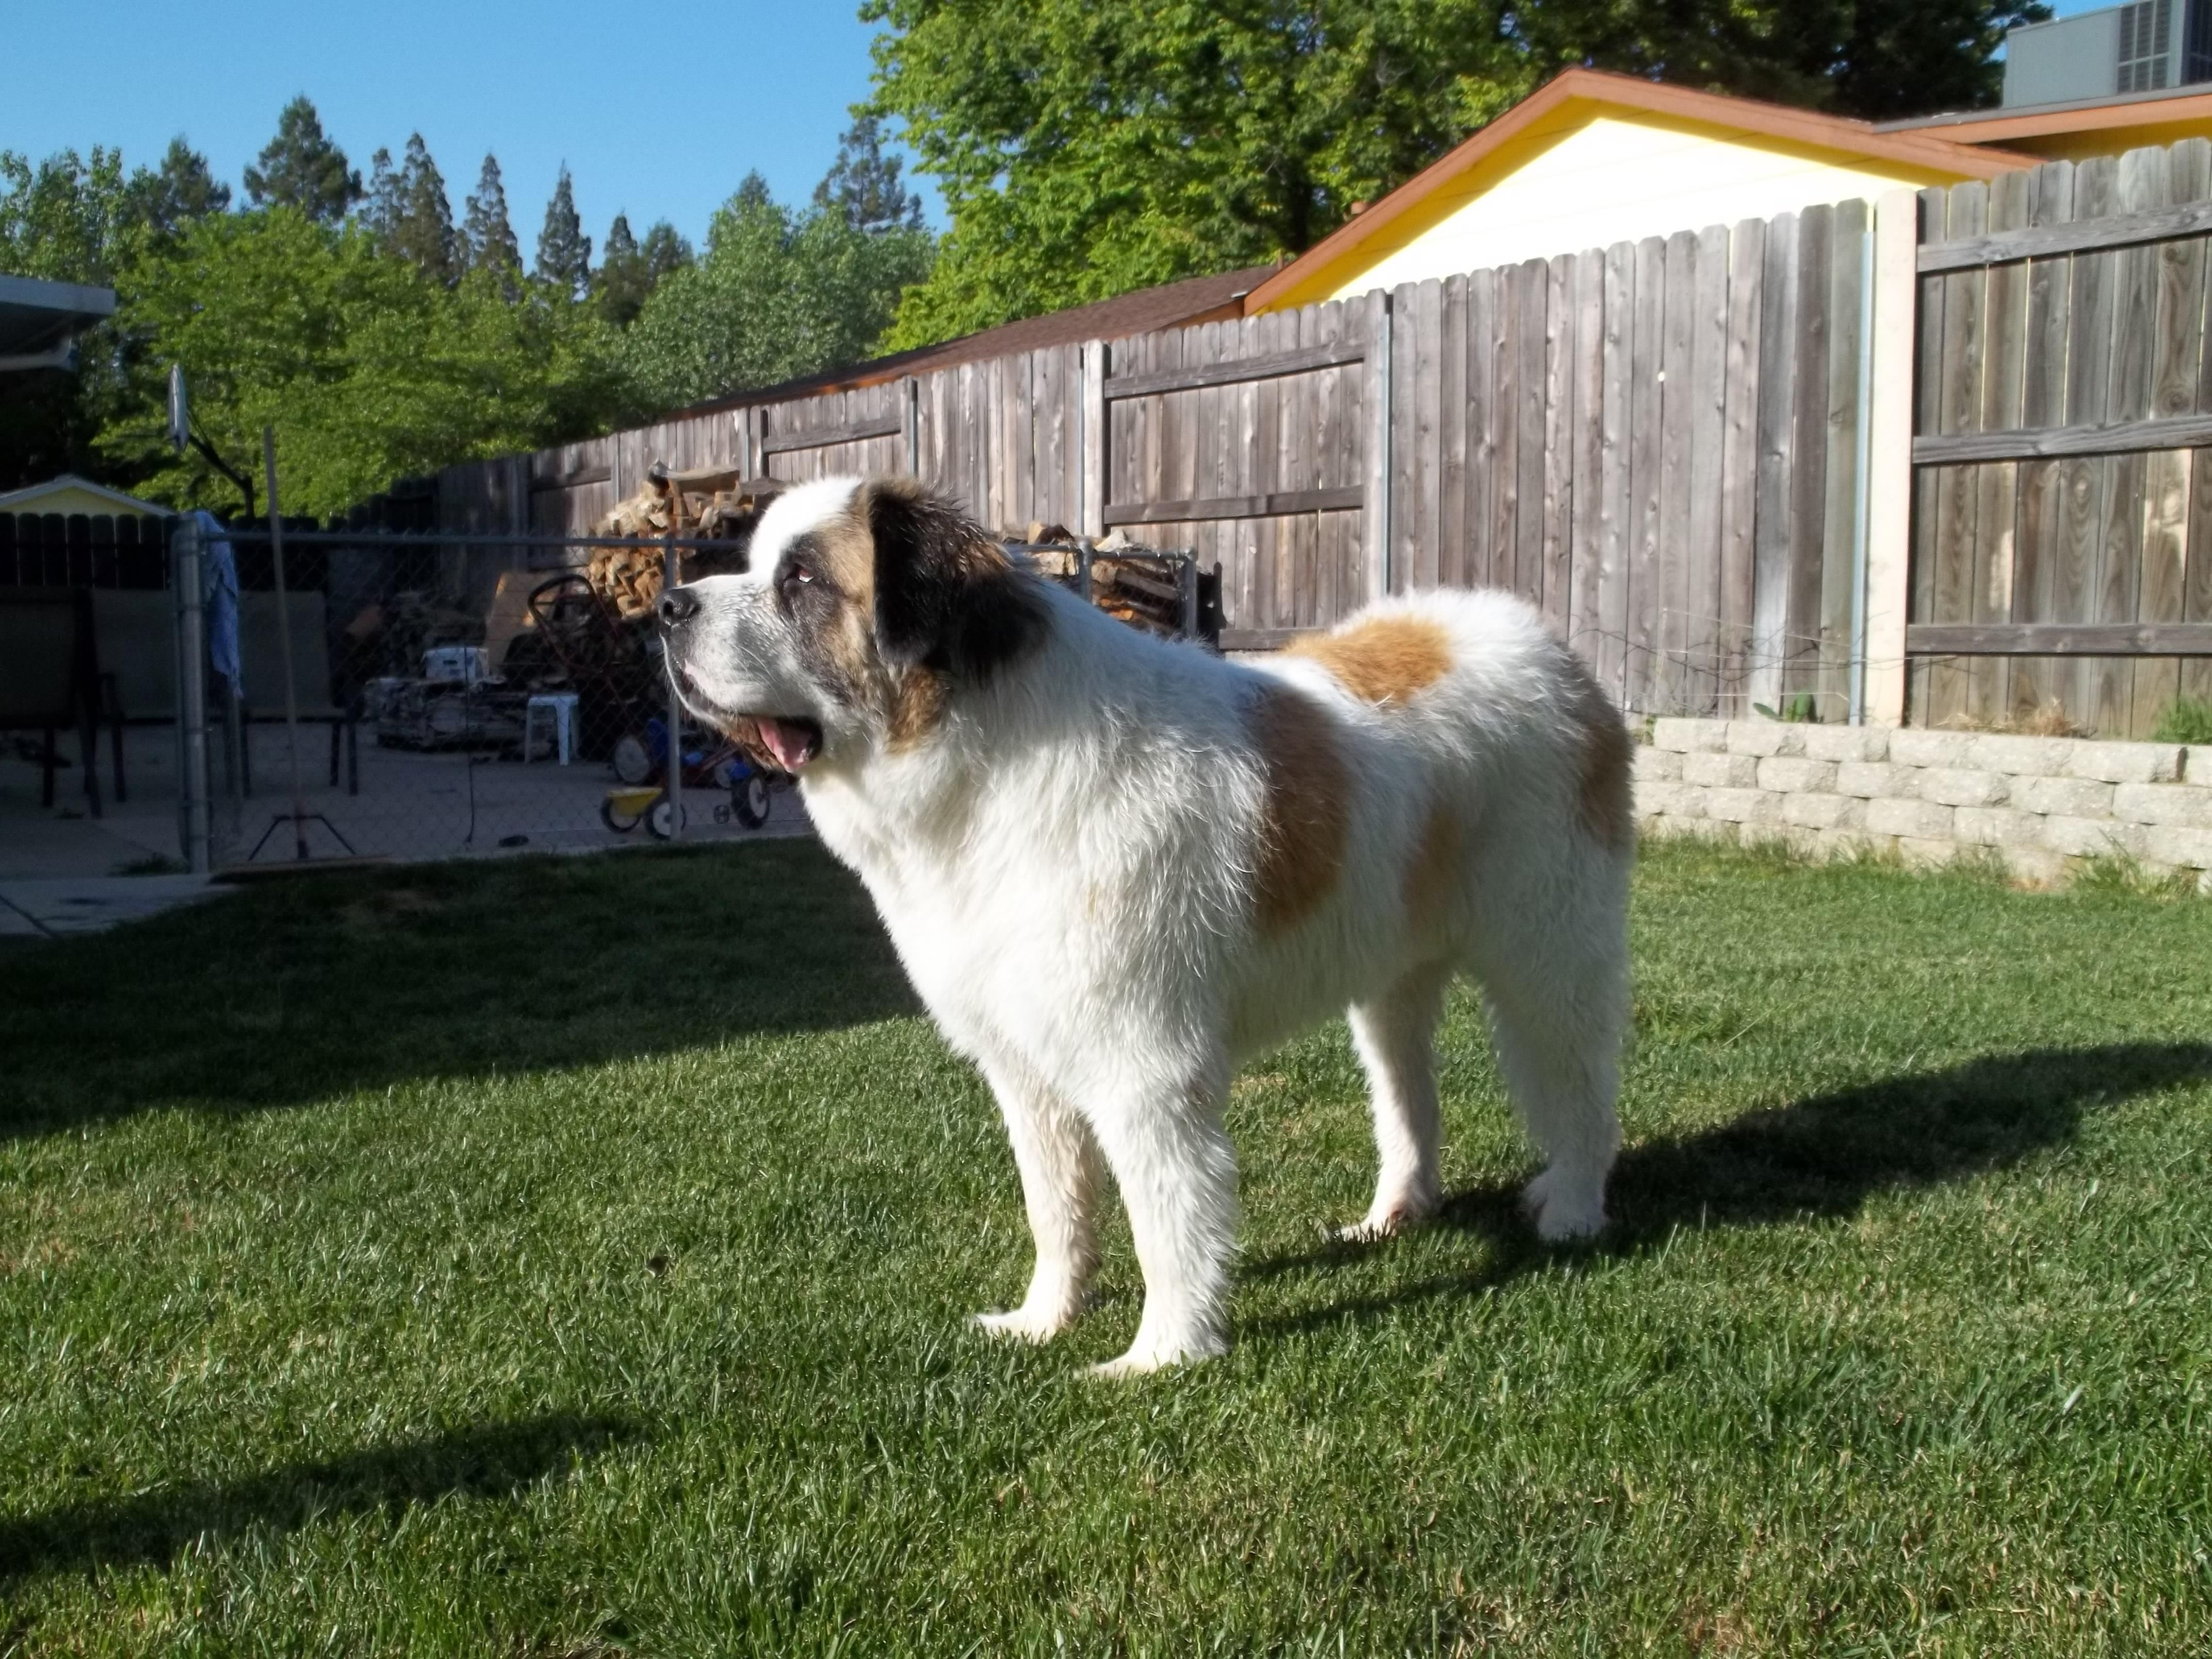 When You Mix St Bernard And Great Pyrenees This Is What You Get